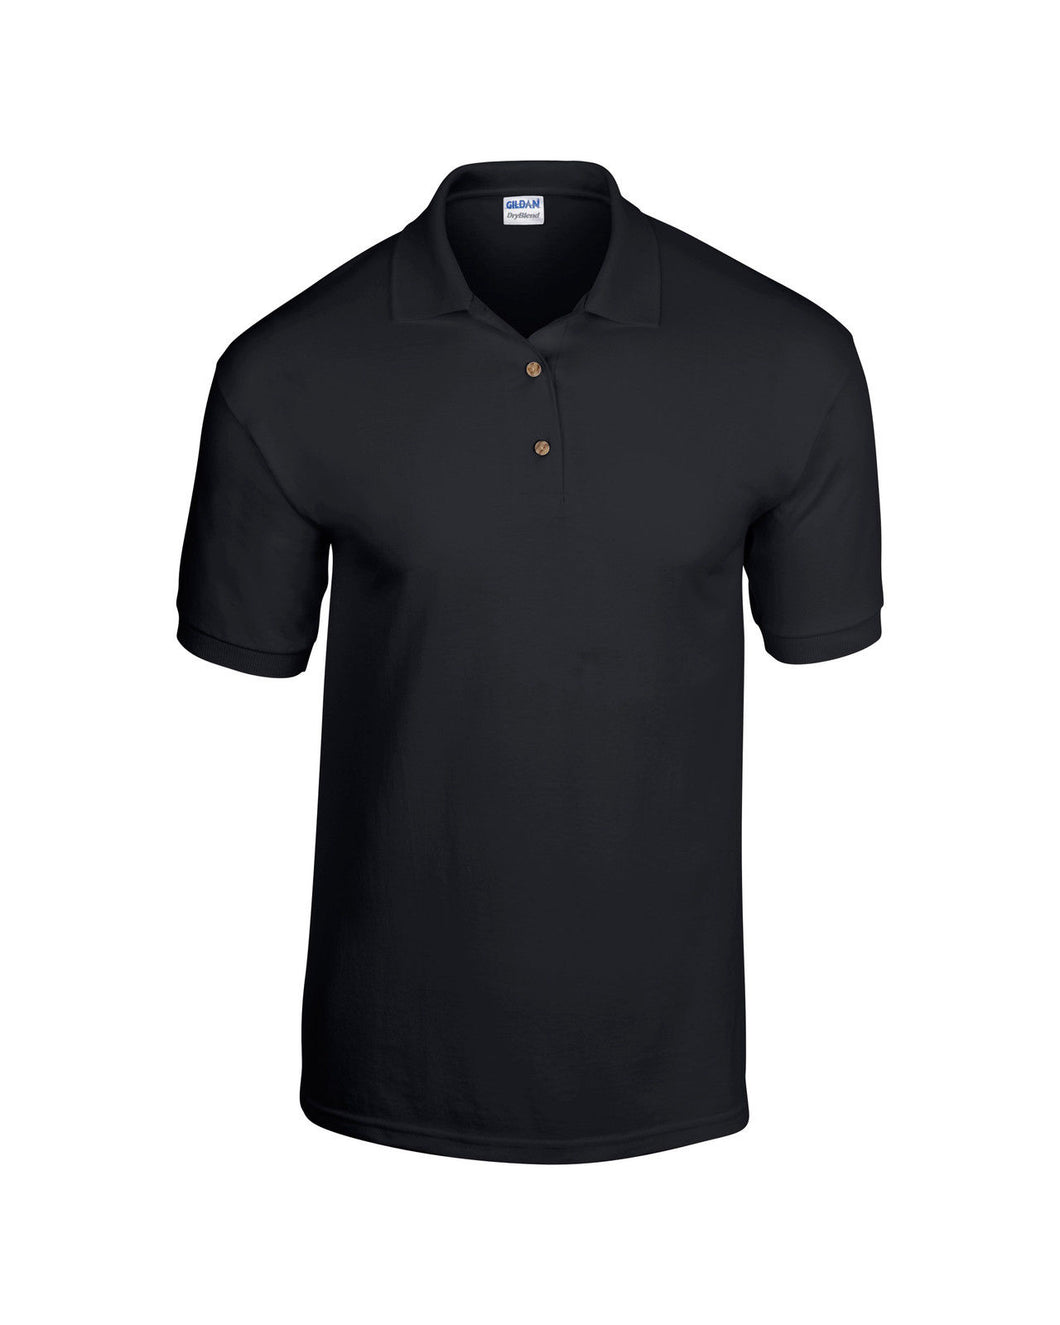 Adult Embroidered Polo Shirts